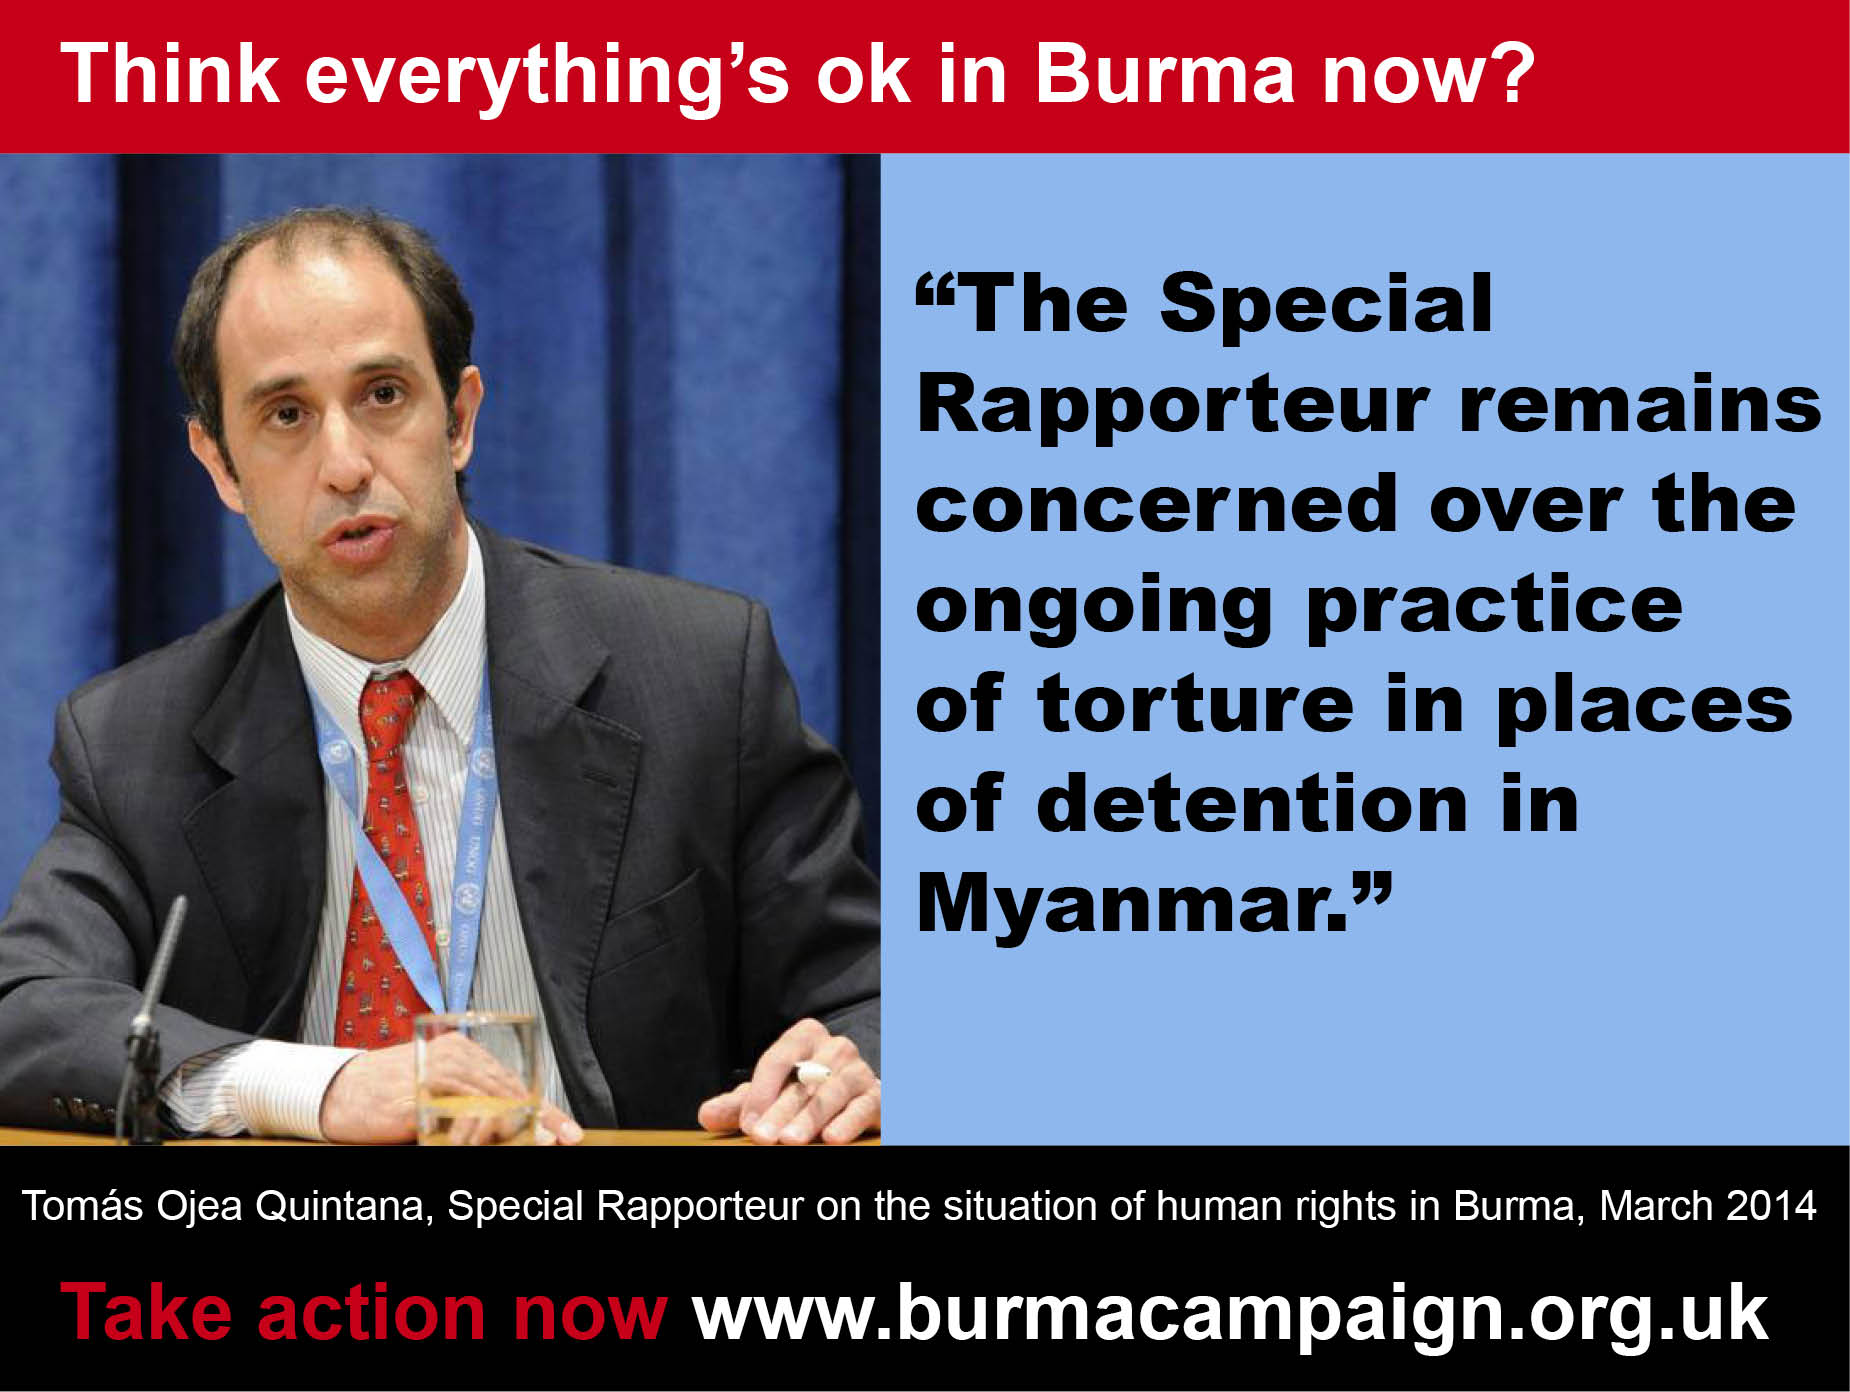 11 think everything ok quintana un report 2014 torture burma campaign UK